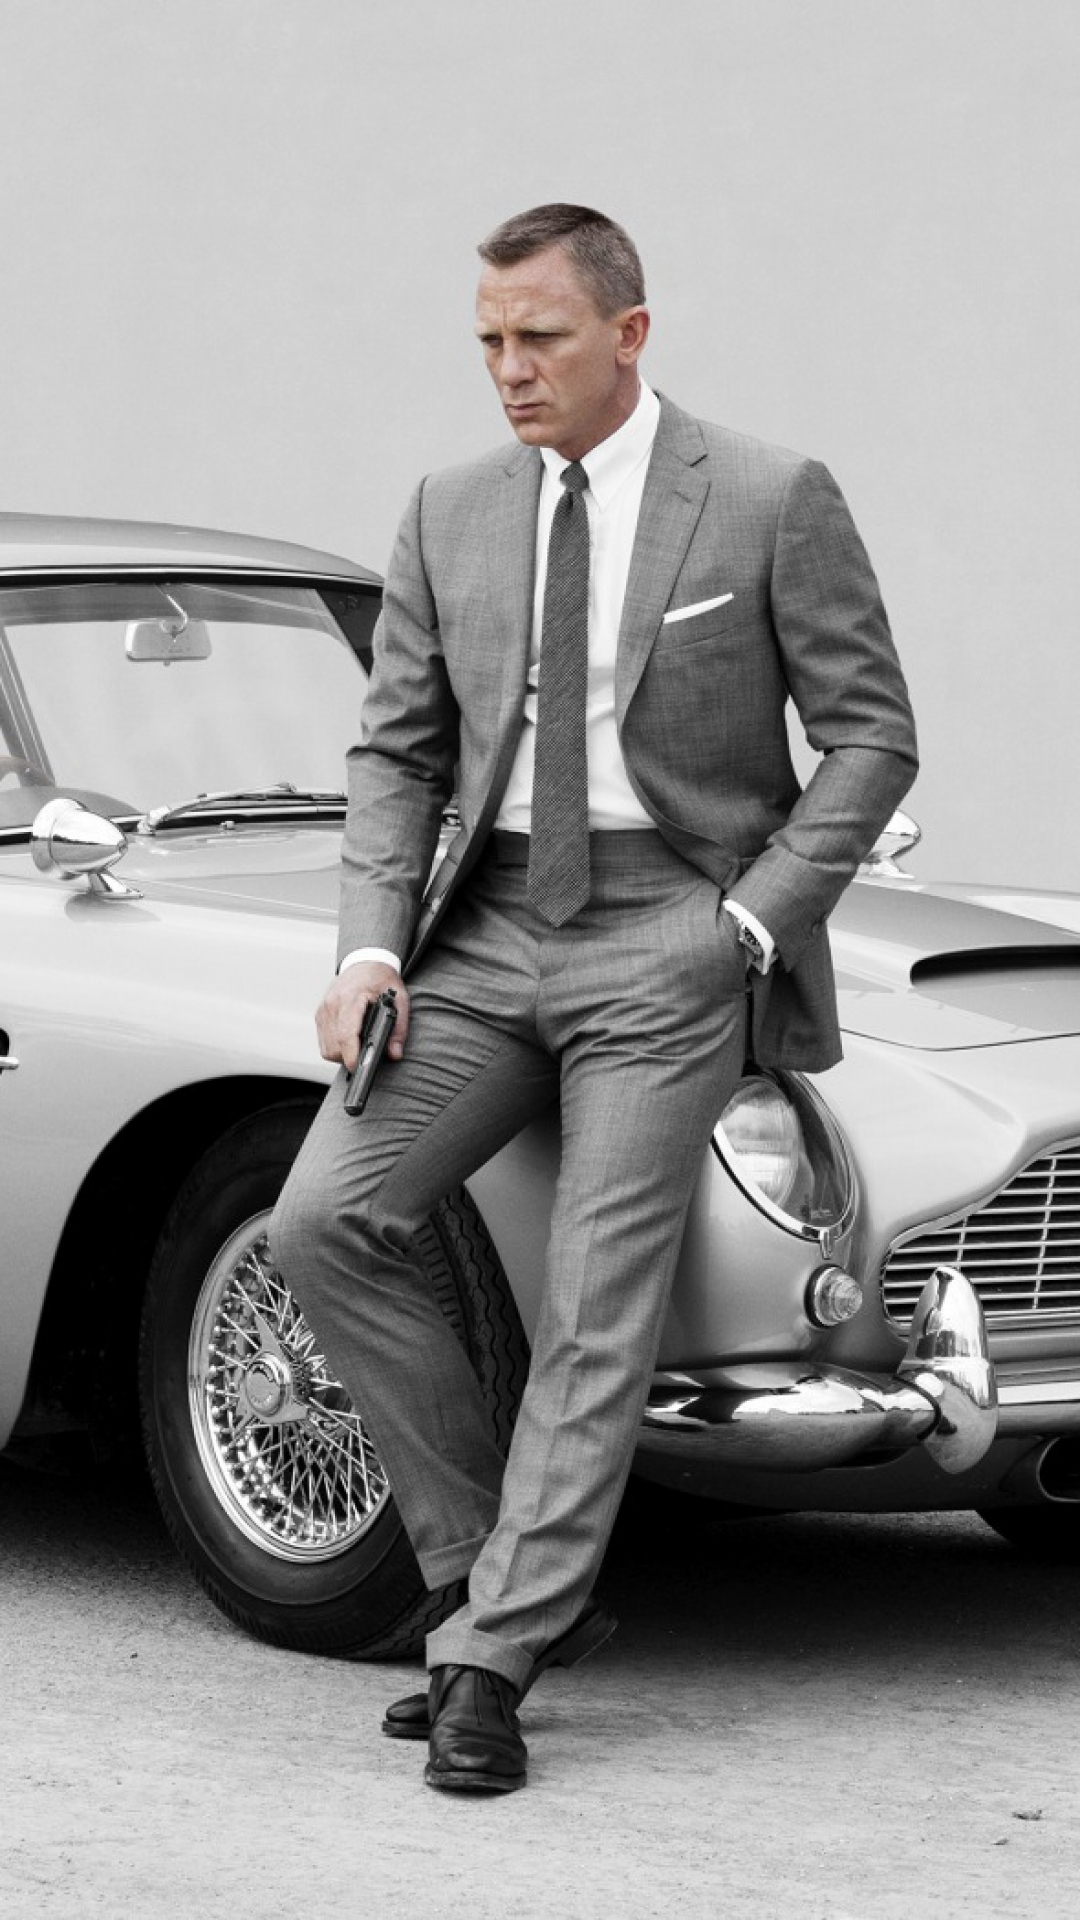 skyfall_james_bond_daniel_craig_aston_martin_db5_99514_1080x1920